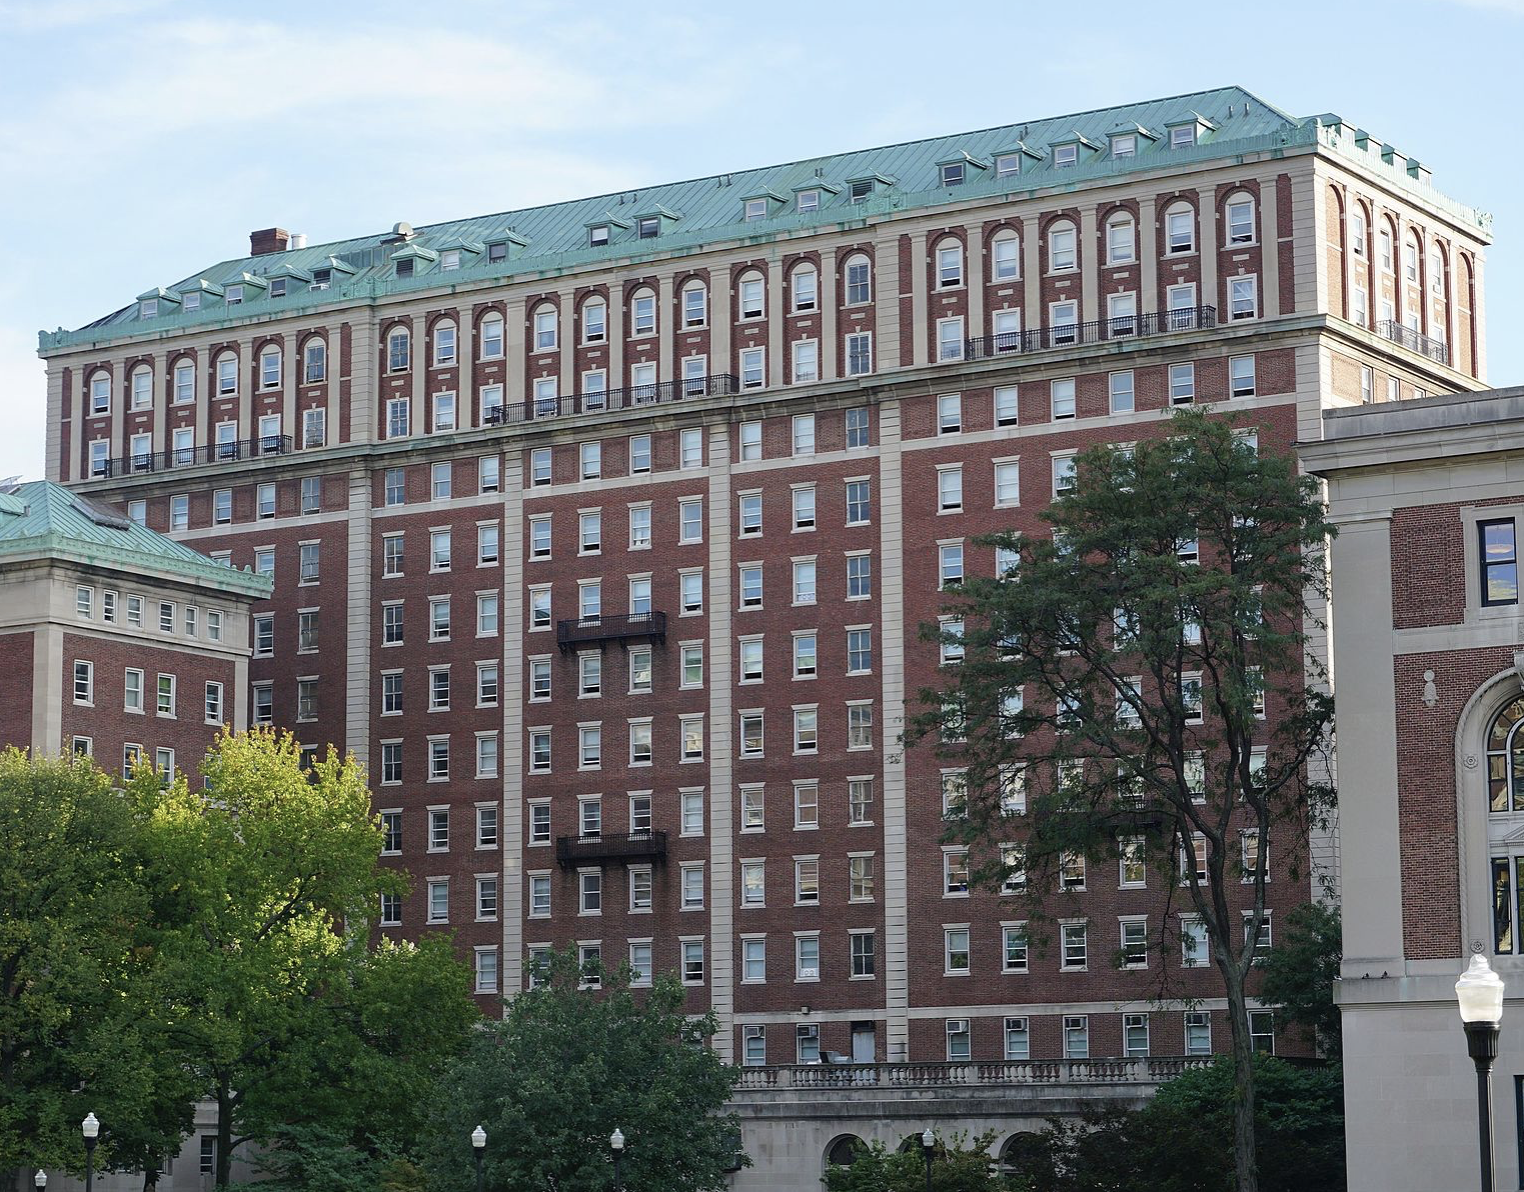 The Fed's Guide to Columbia Dorms